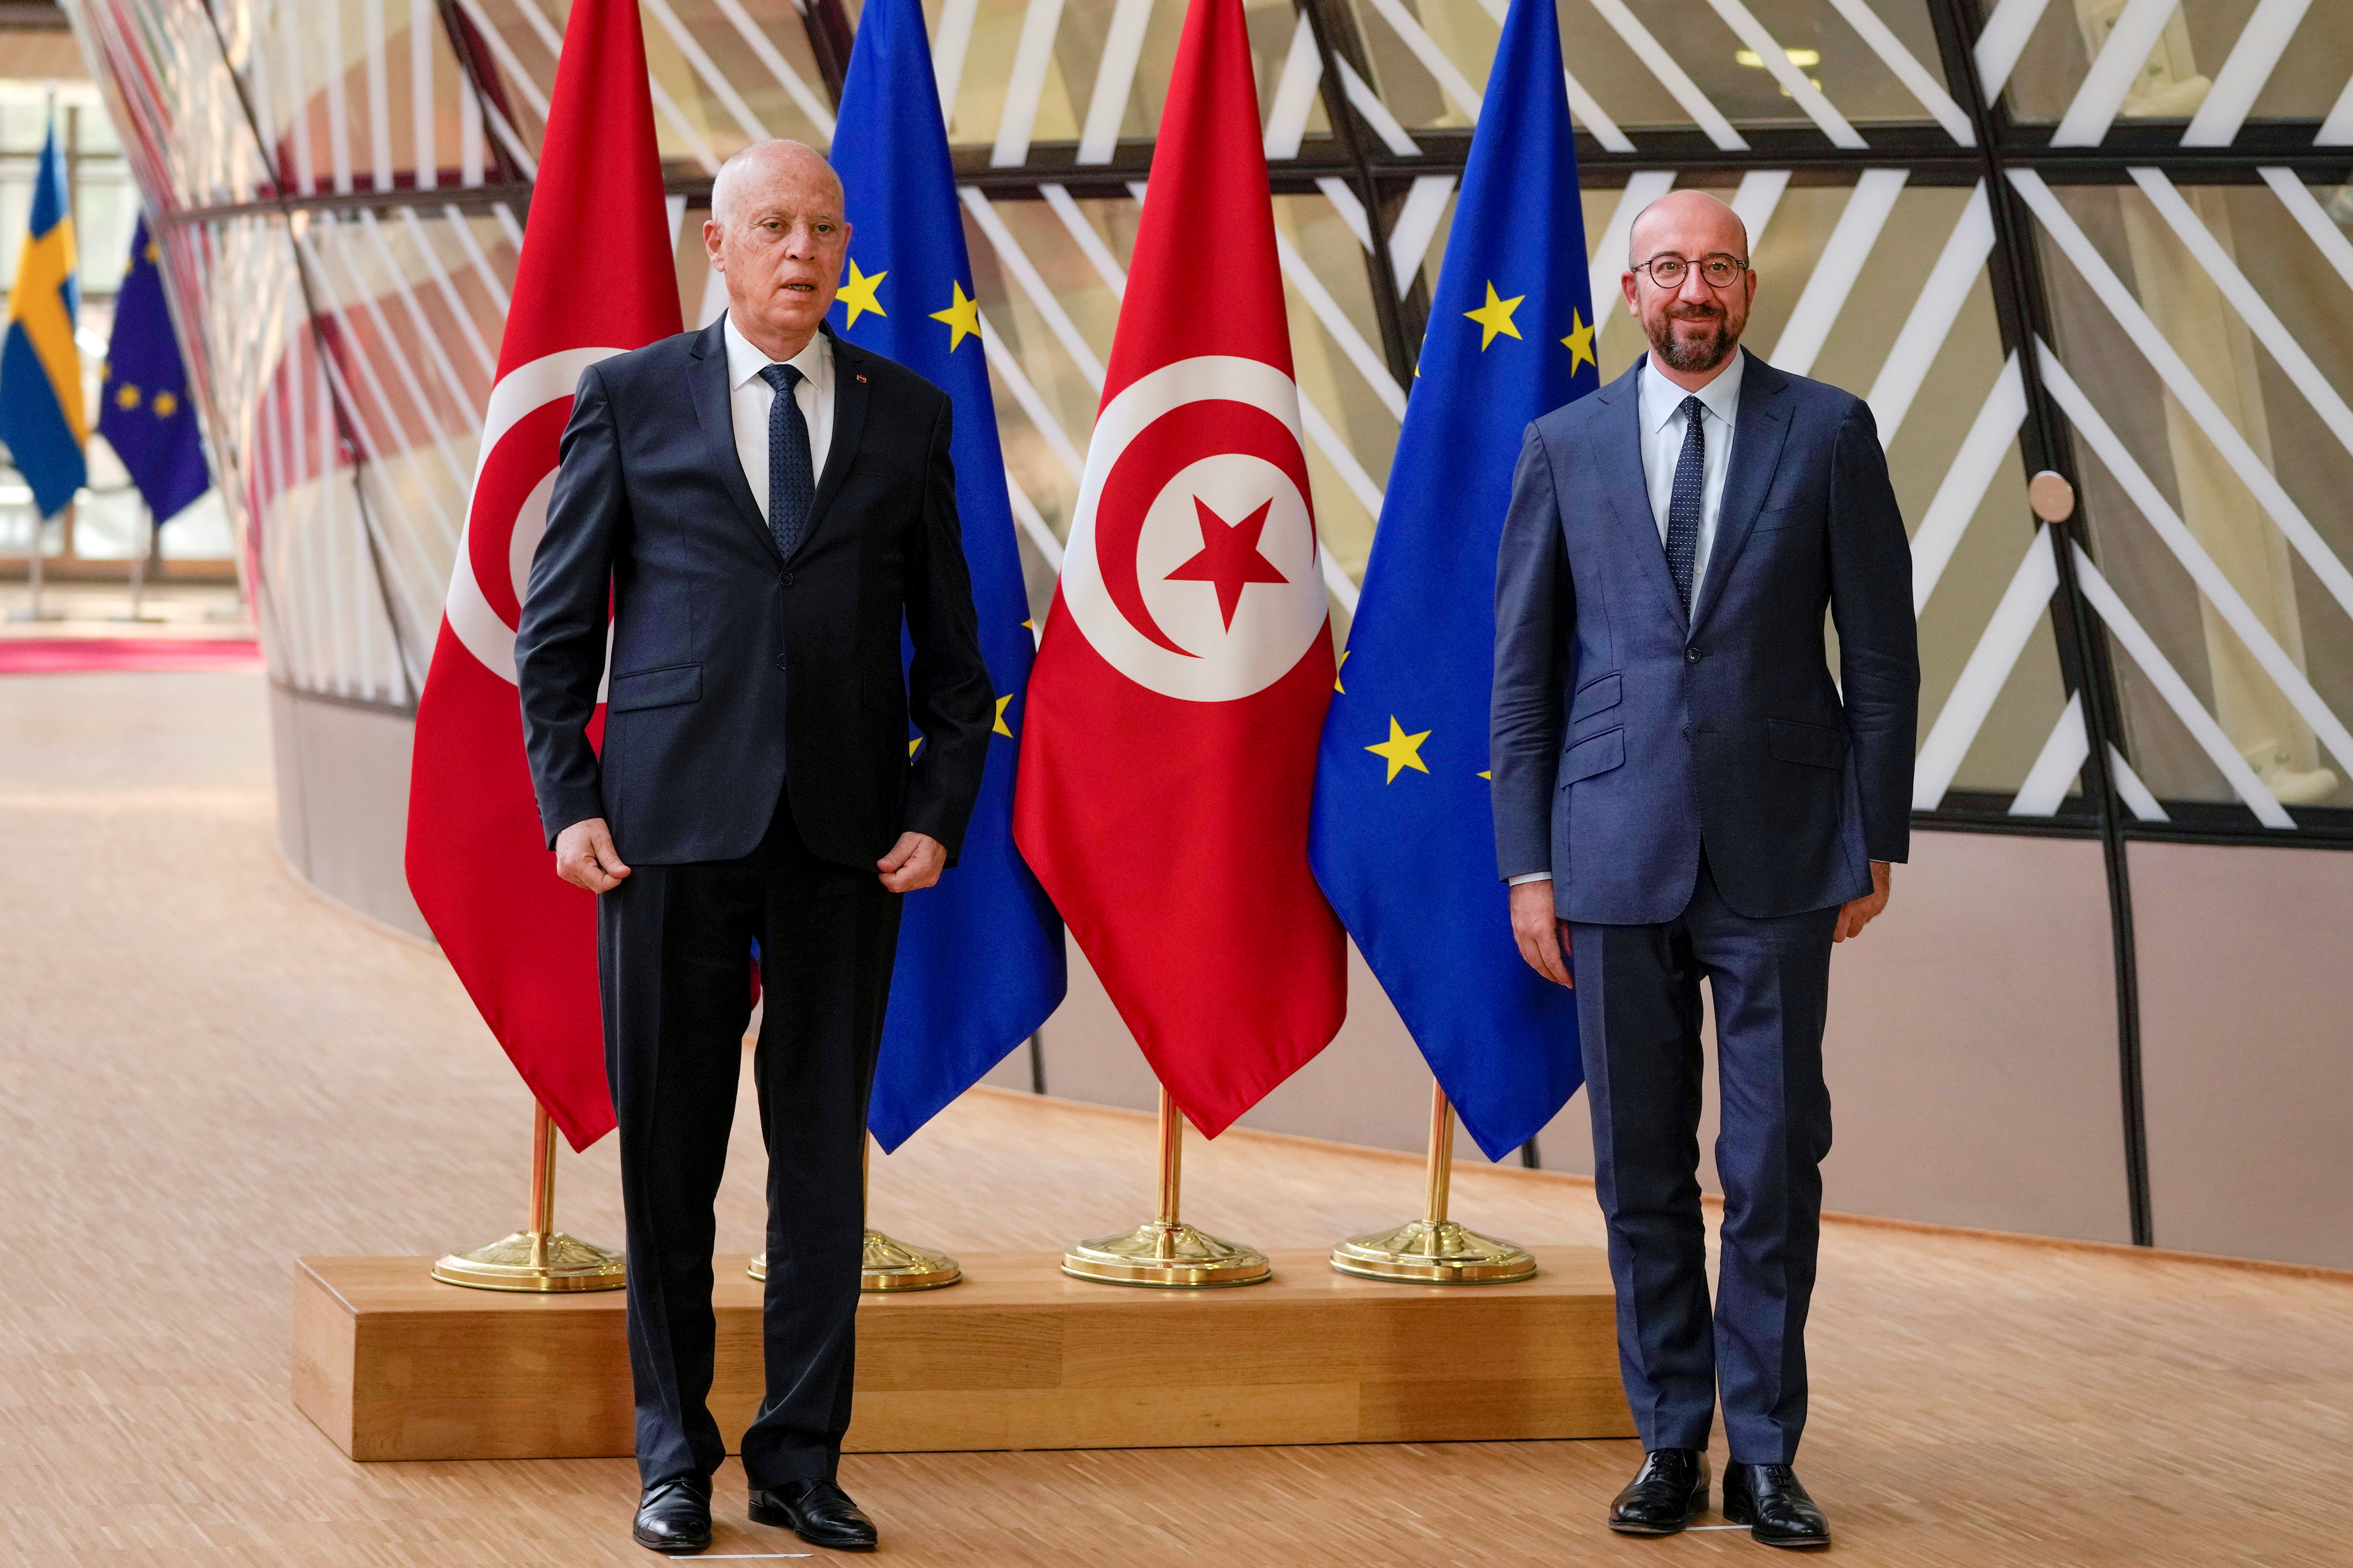 Tunisian President Kais Saied and European Council President Charles Michel pose for the media prior their meeting at the European Council headquarters in Brussels, Belgium June 4, 2021. Francisco Seco/Pool via REUTERS/File Photo